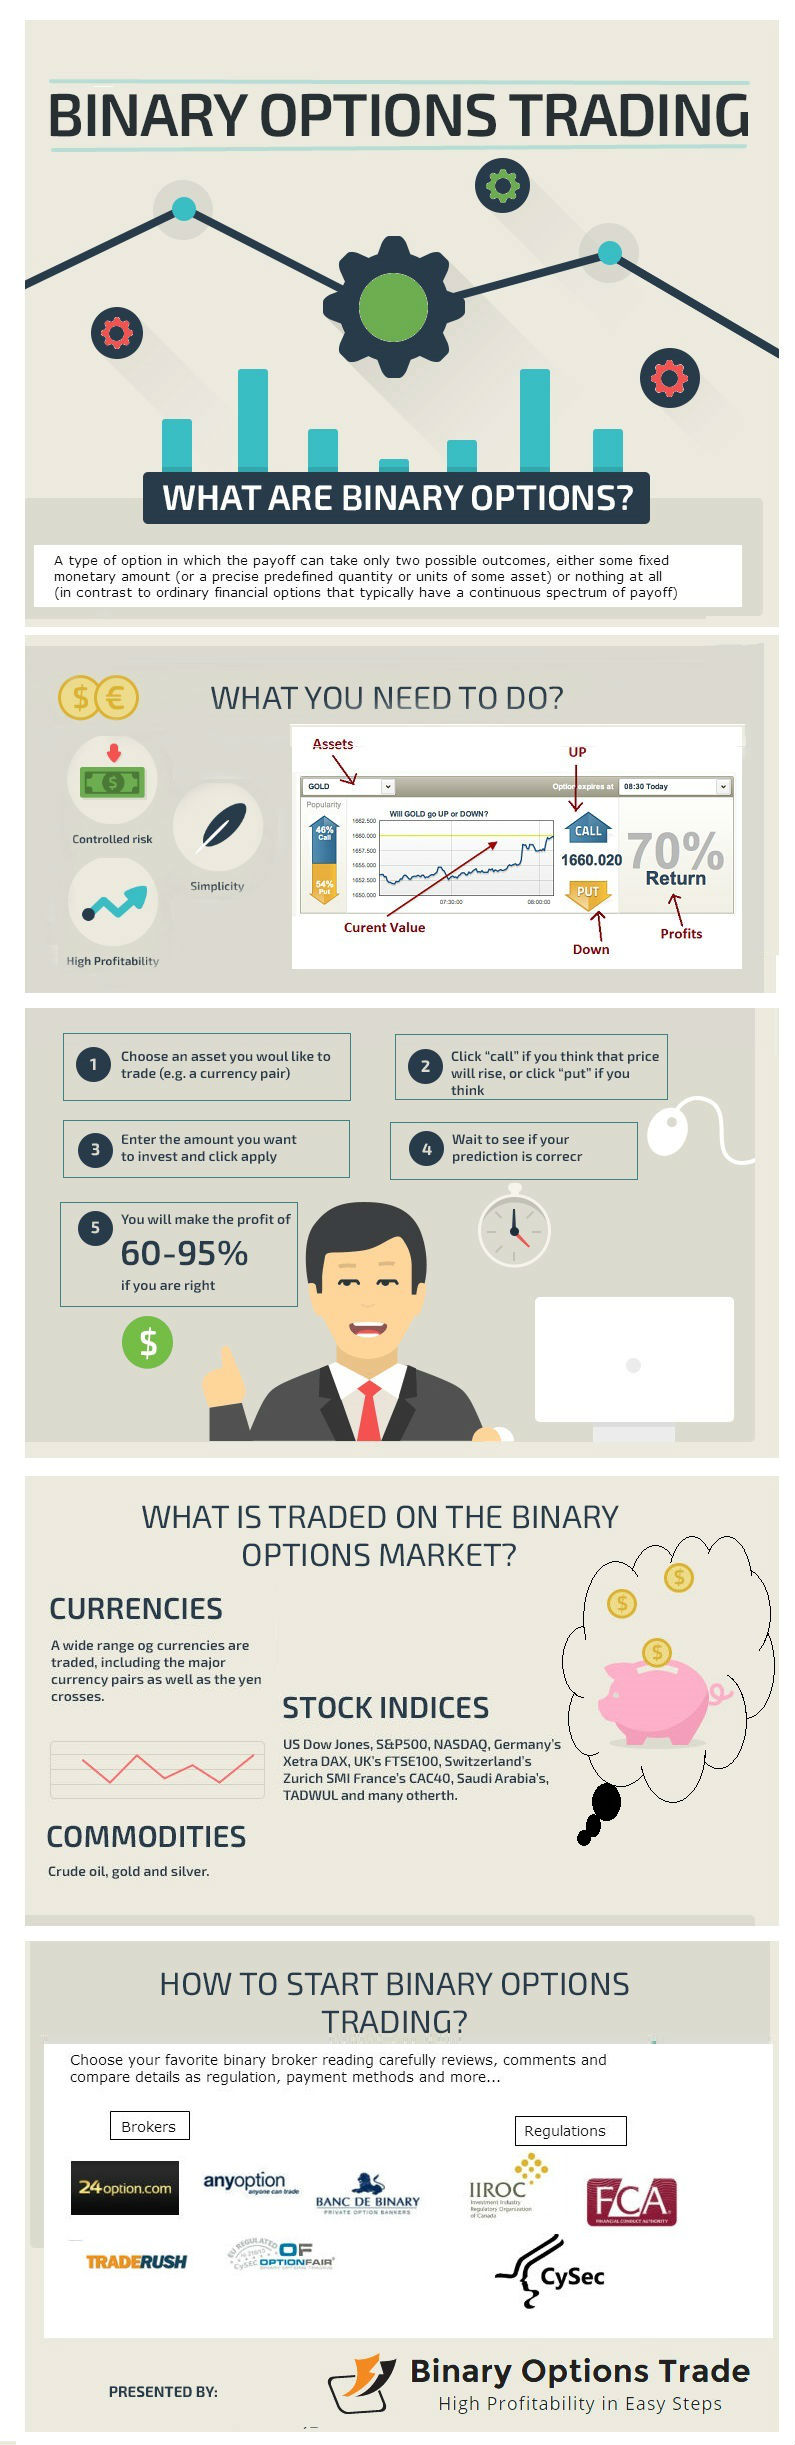 start trading binary options uk